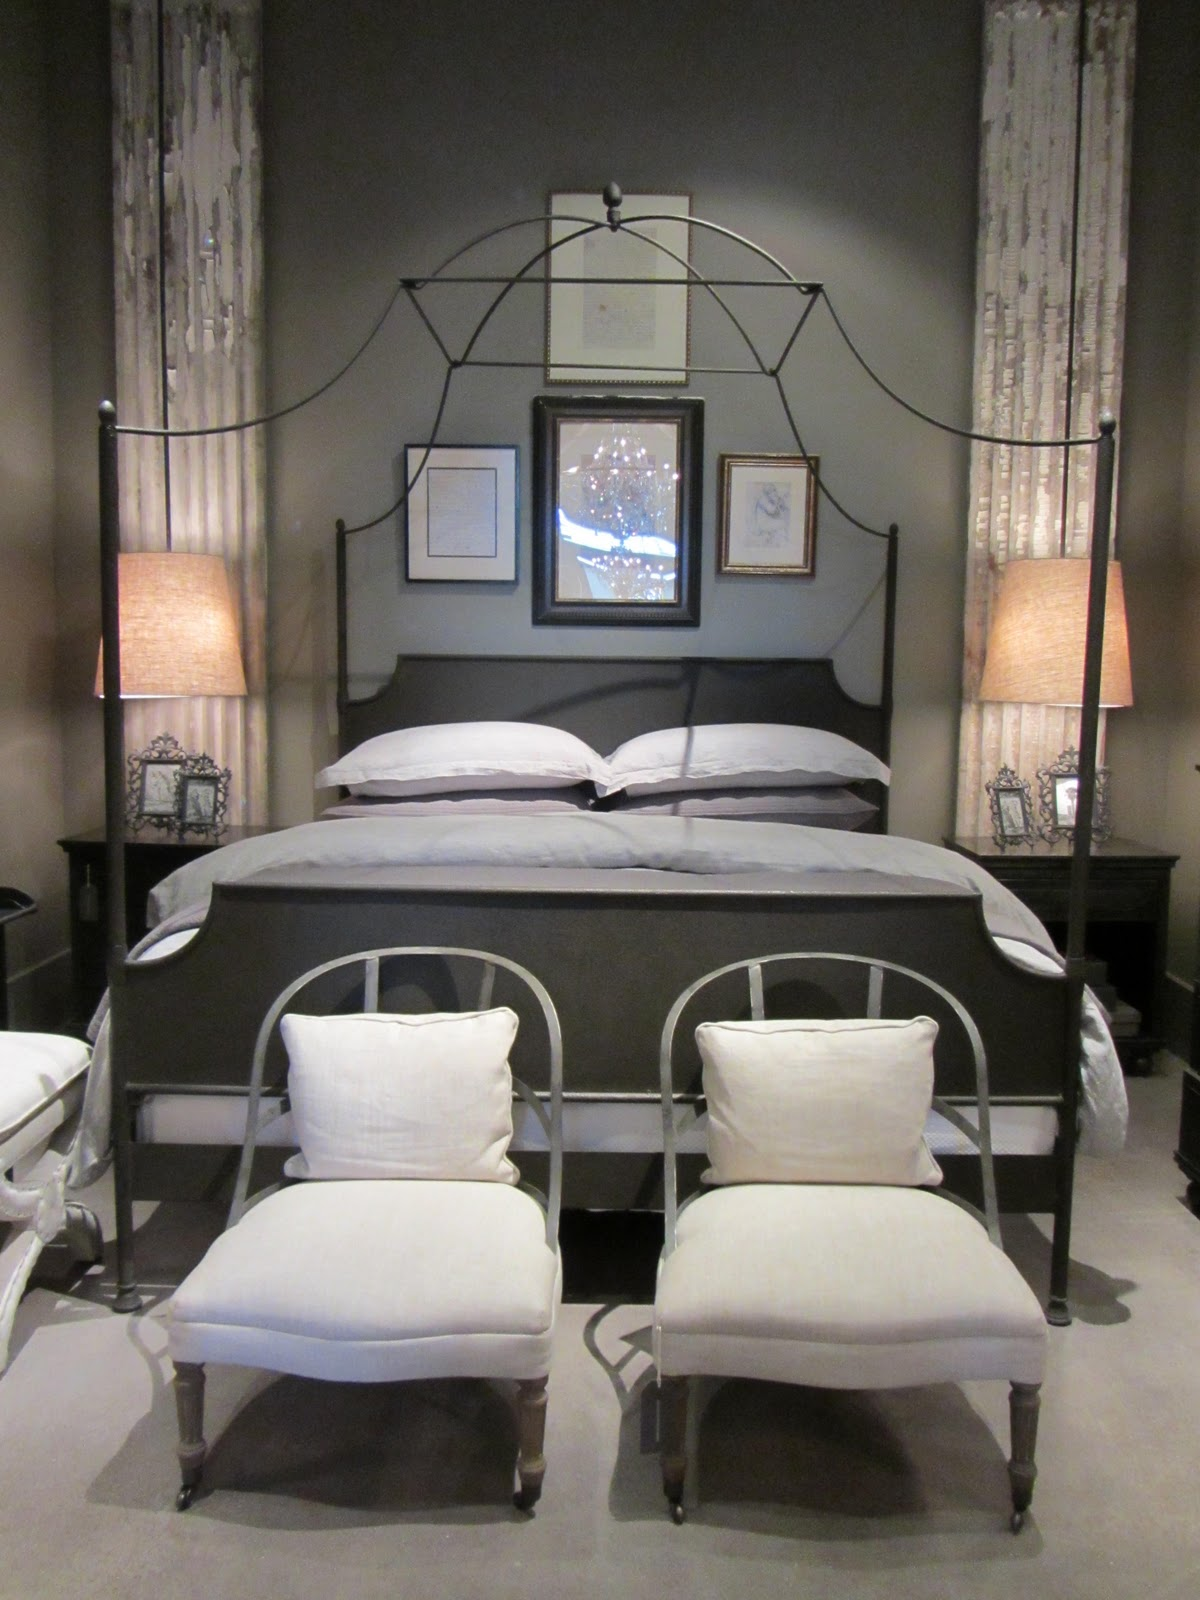 Restoration Hardware Knock Off: Moments Of Delight...Anne Reeves: City Series, Houston